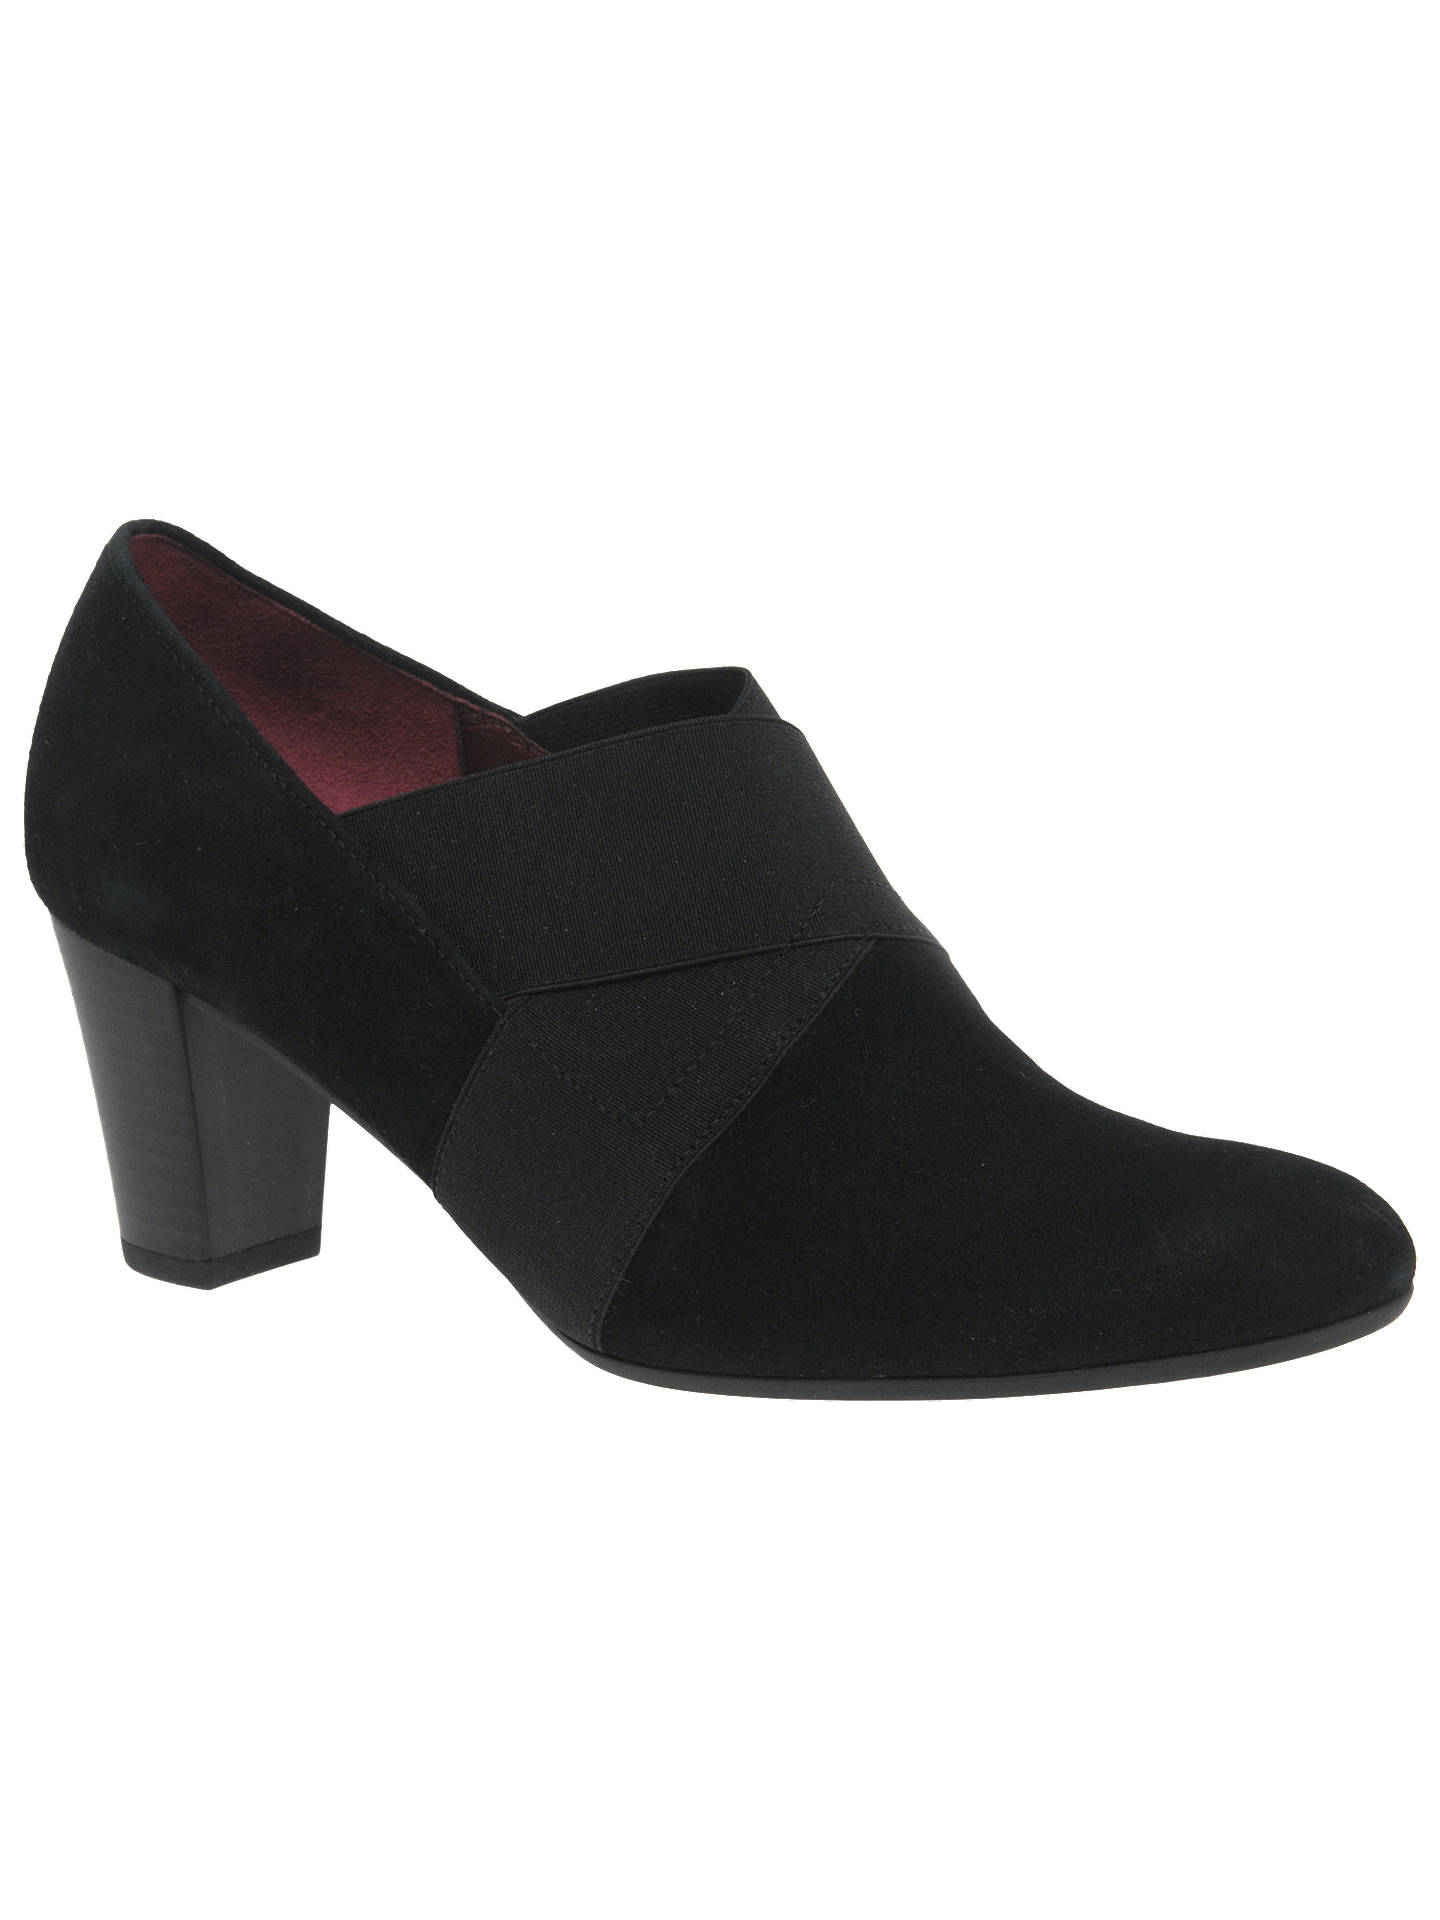 Gabor Function Wide Fit Closed Court Shoes Black At John